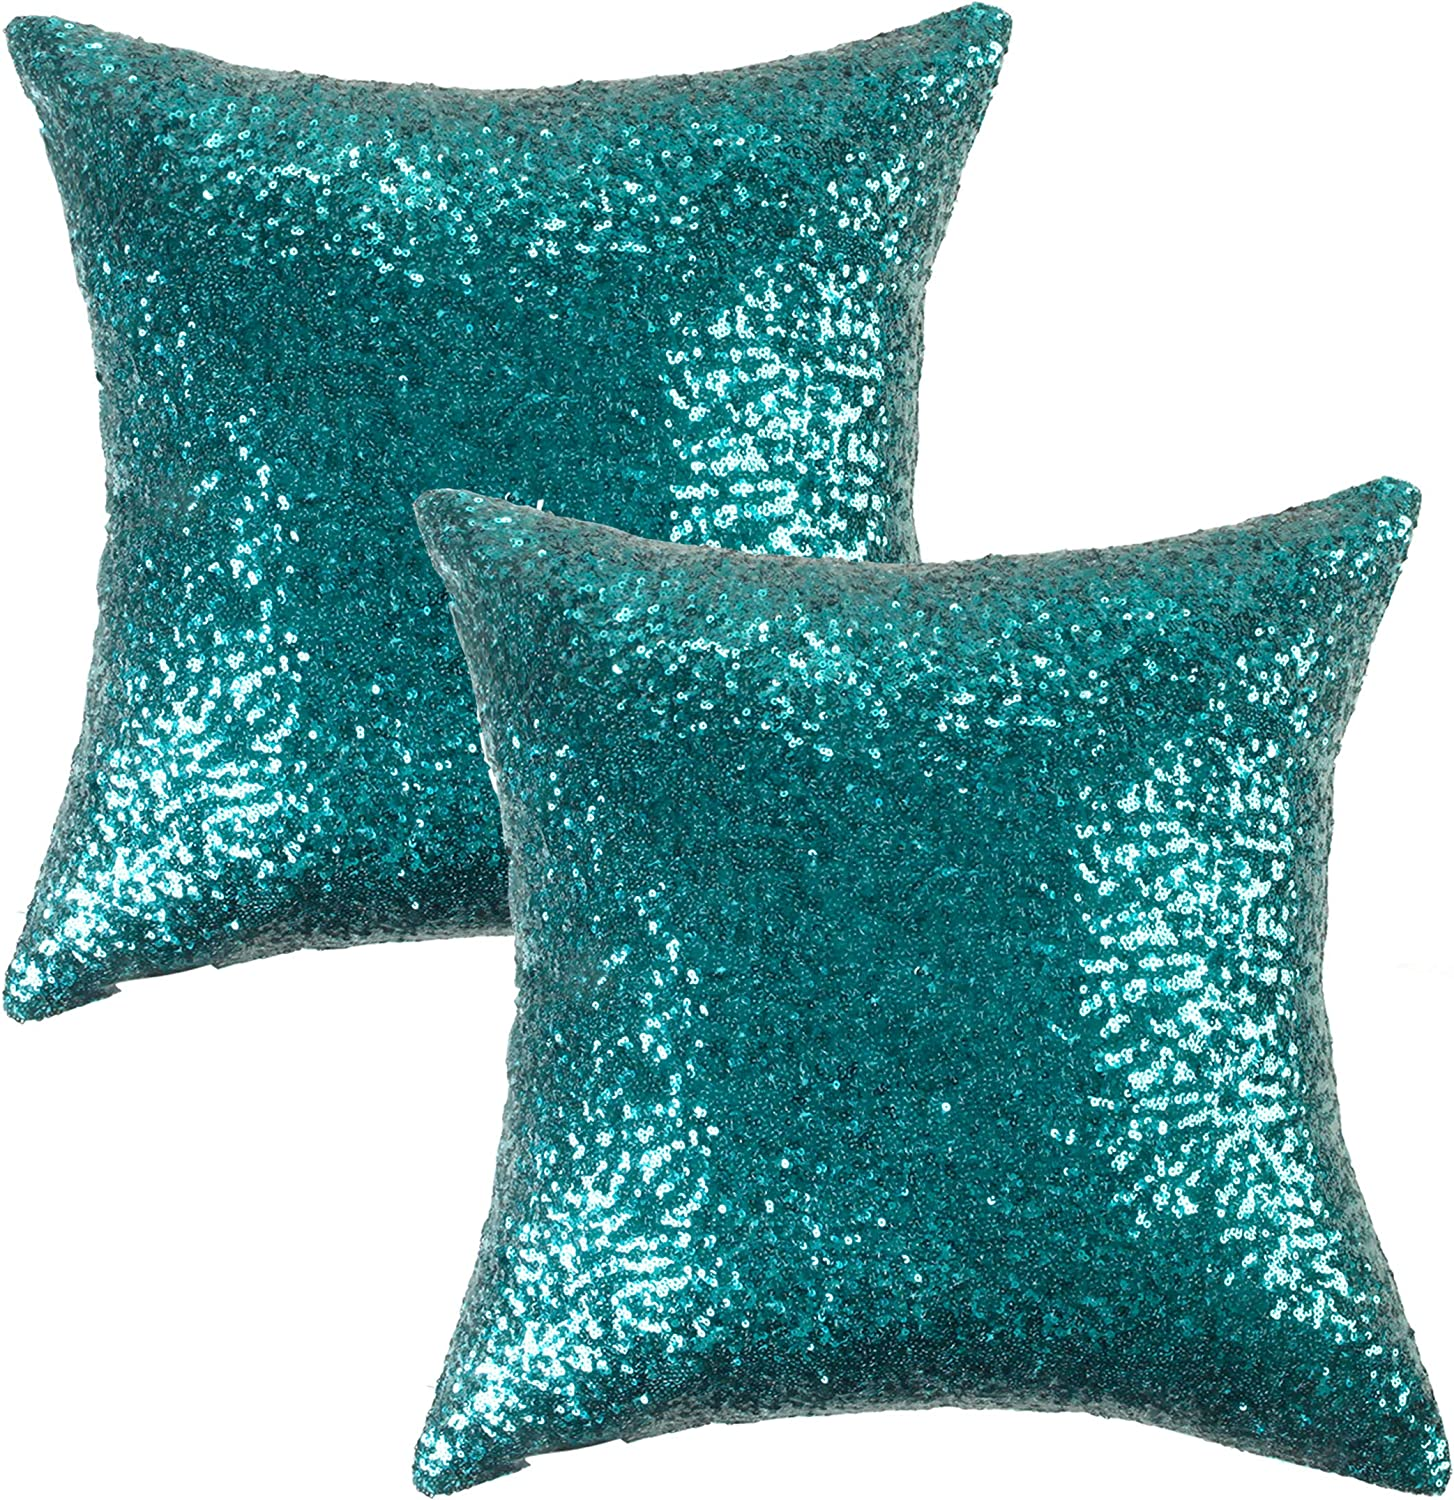 Kevin Textile Sequin Decor Pillow Cases Sequins New Year Party/Wedding Decorative Throw Cushion Cover Sham, Hidden Zipper Design(45cmx45cm),(2 Pieces,Teal)